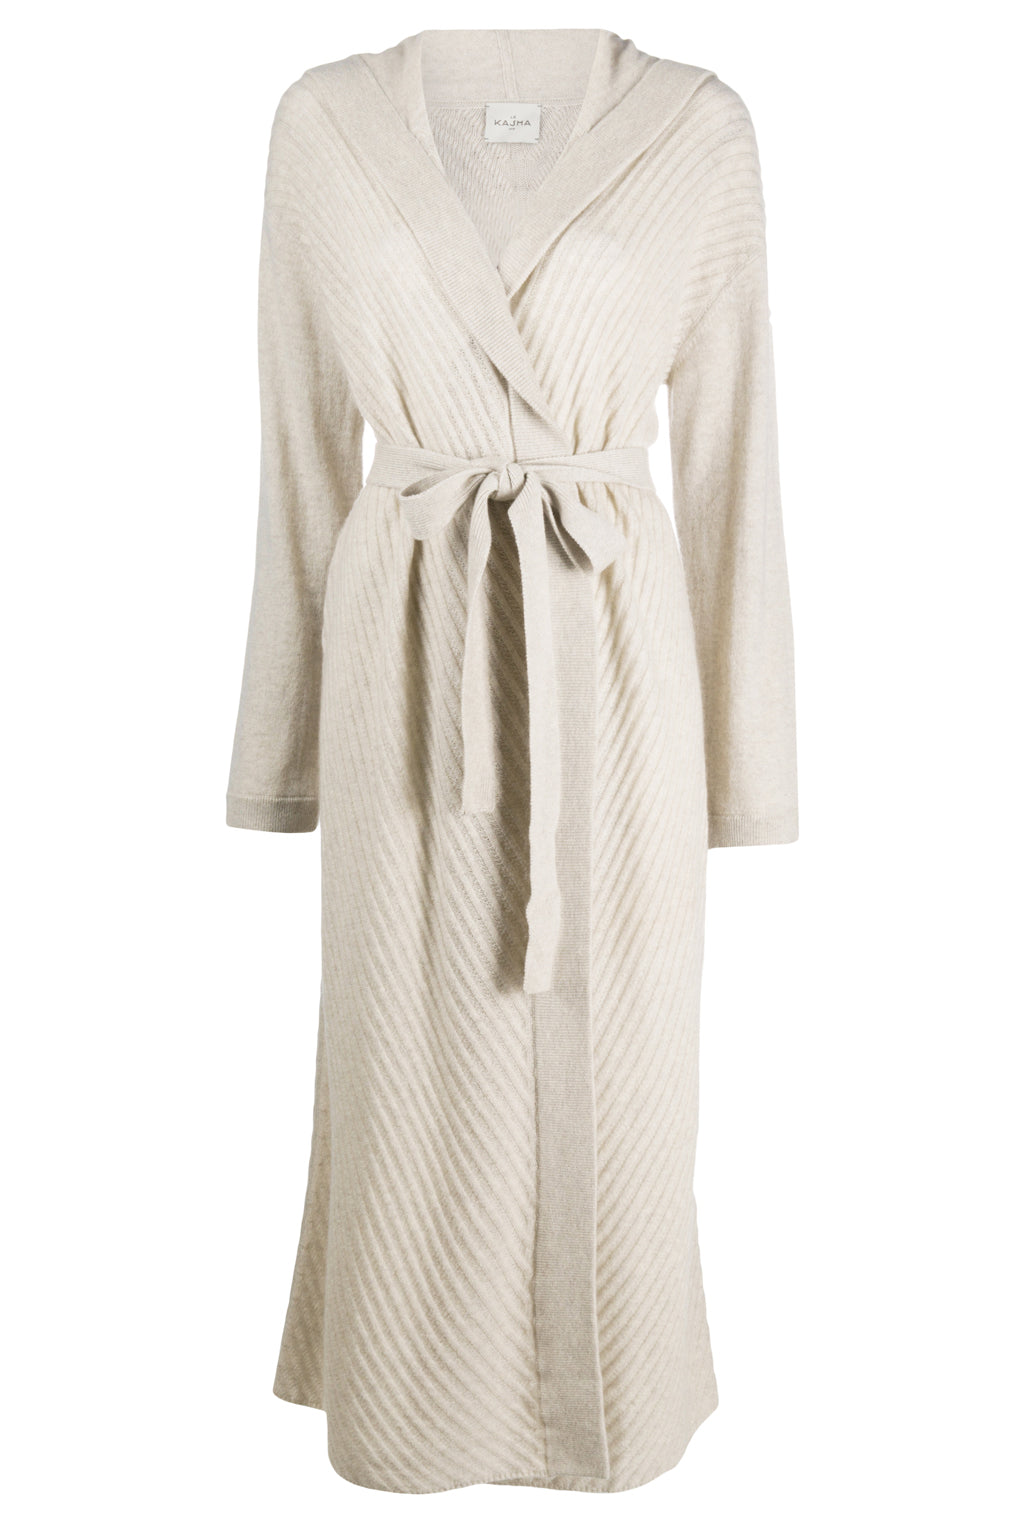 DALLAS cashmere long cardigan